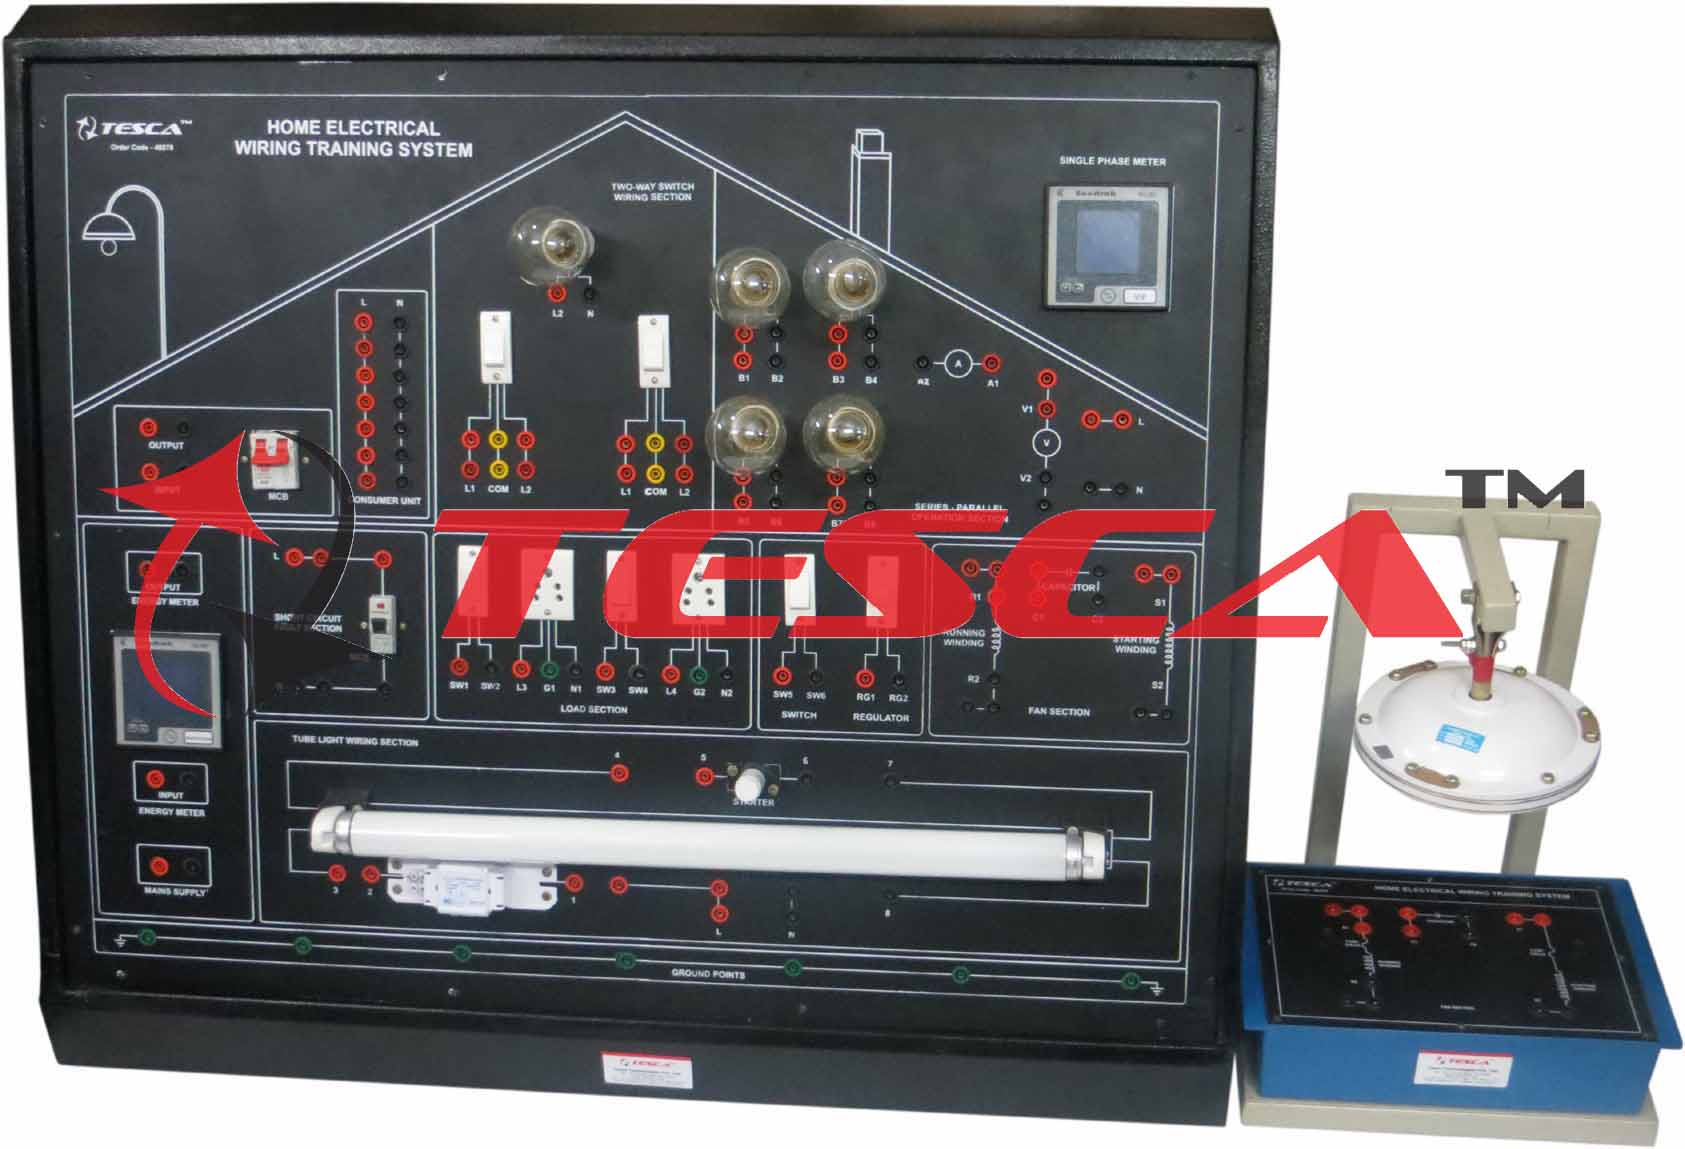 hight resolution of home electrical wiring training system 1878 3875 jpg